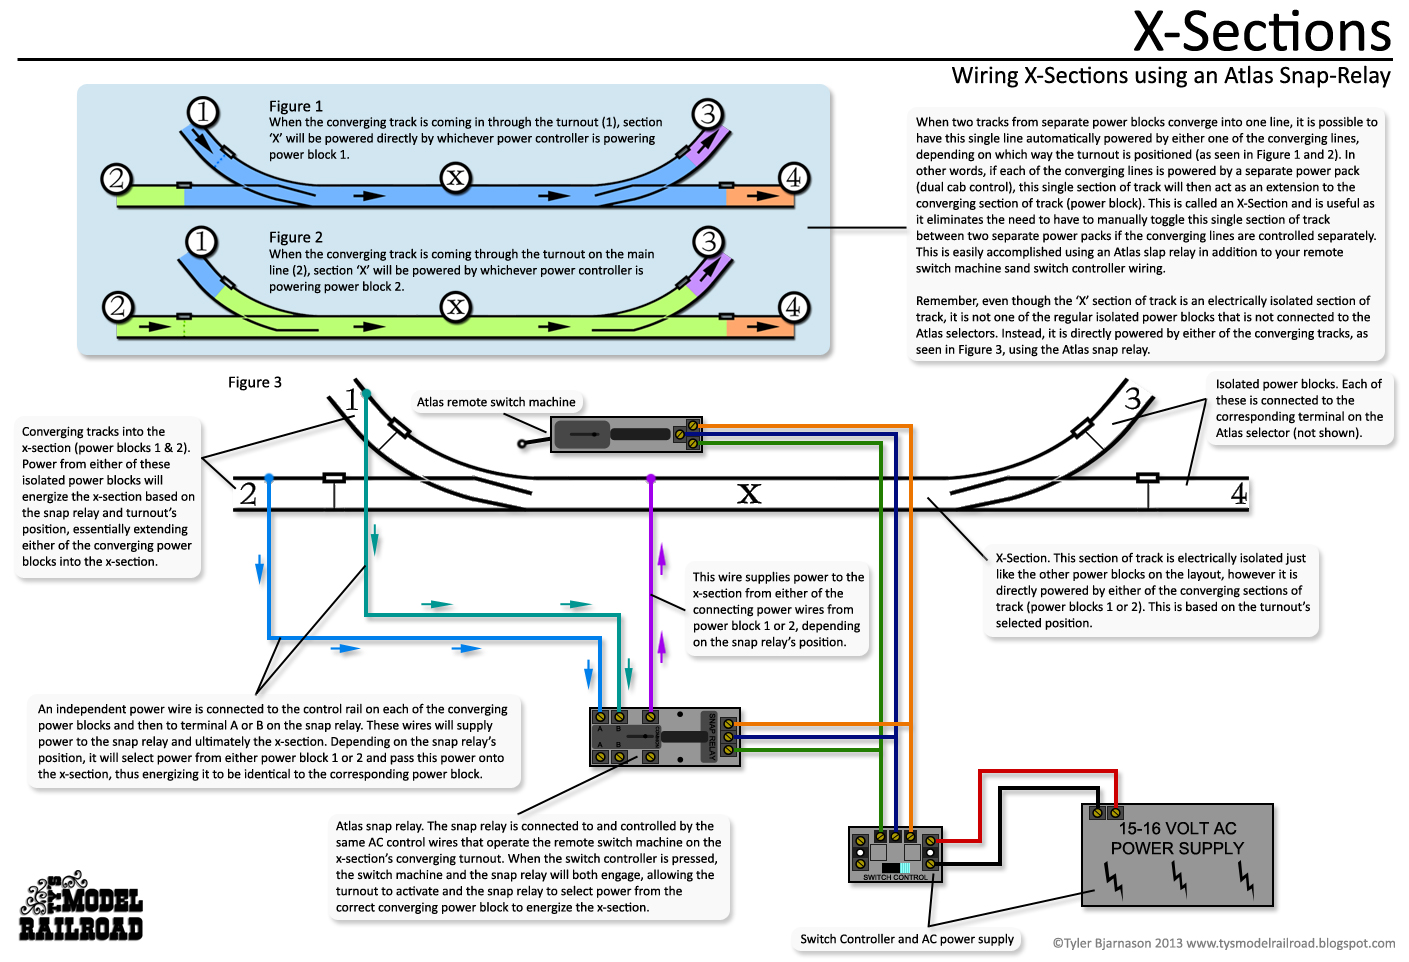 Tys Model Railroad Wiring Diagrams Remote On Off Switch Circuit Schematic Diagram How To Wire An X Section Using Atlas Snap Relay And Existing